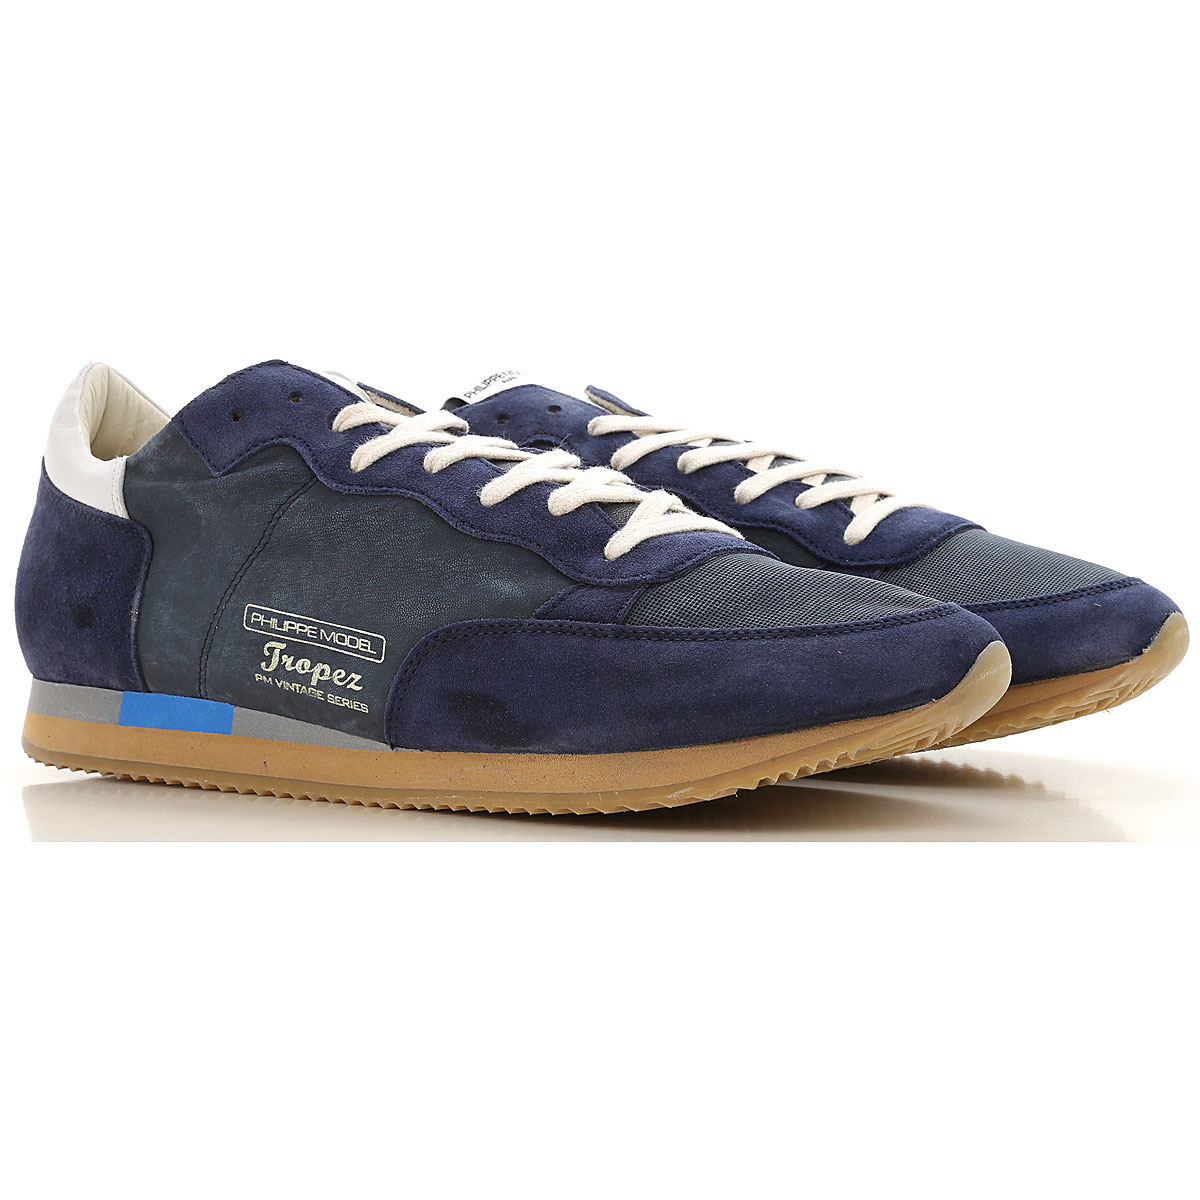 Philippe Model Sneakers for Men On Sale Blue Navy SE - GOOFASH